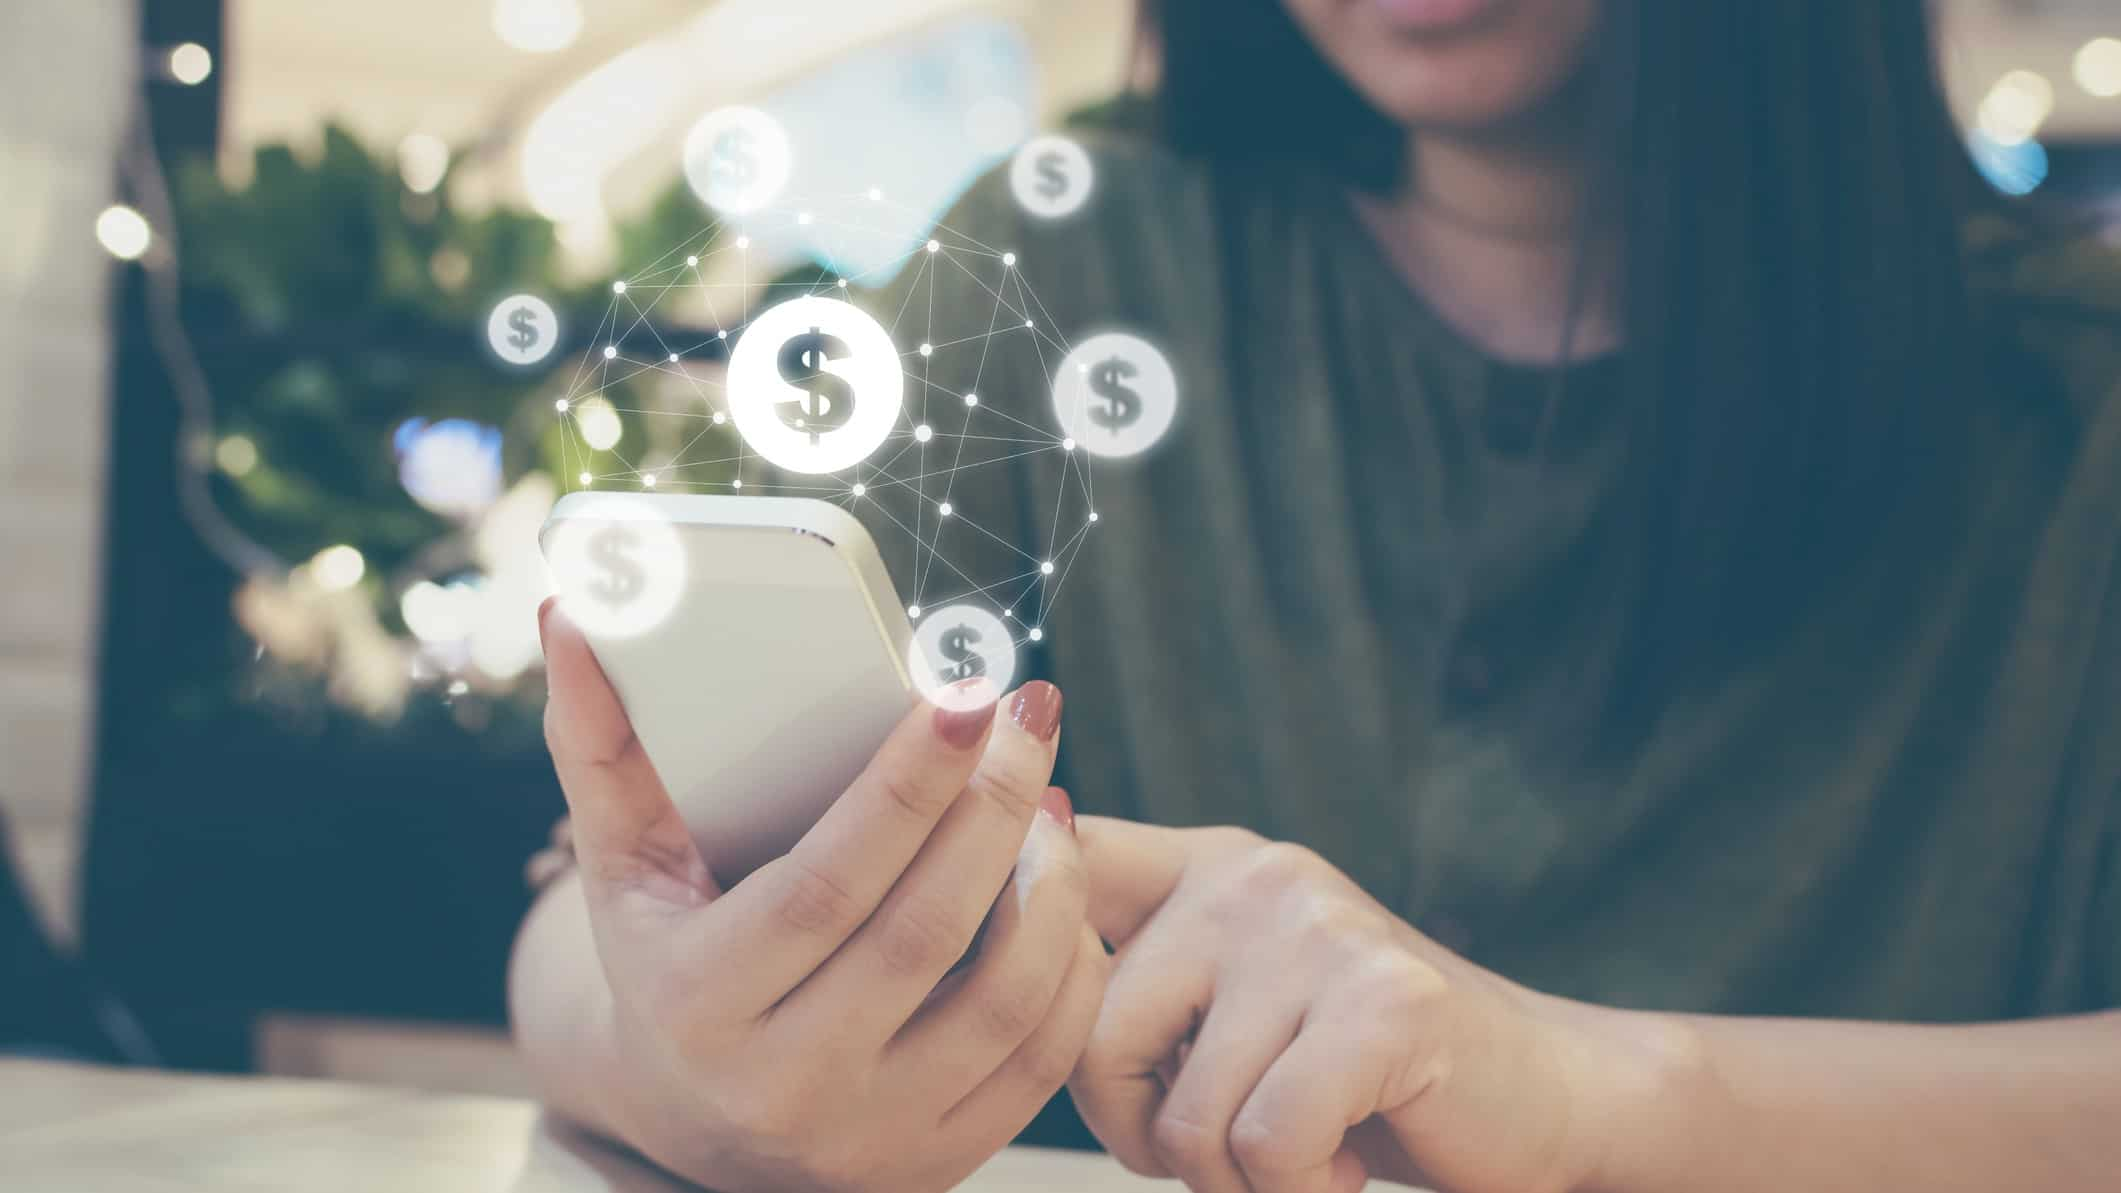 Woman holding smartphone with digital payment capability